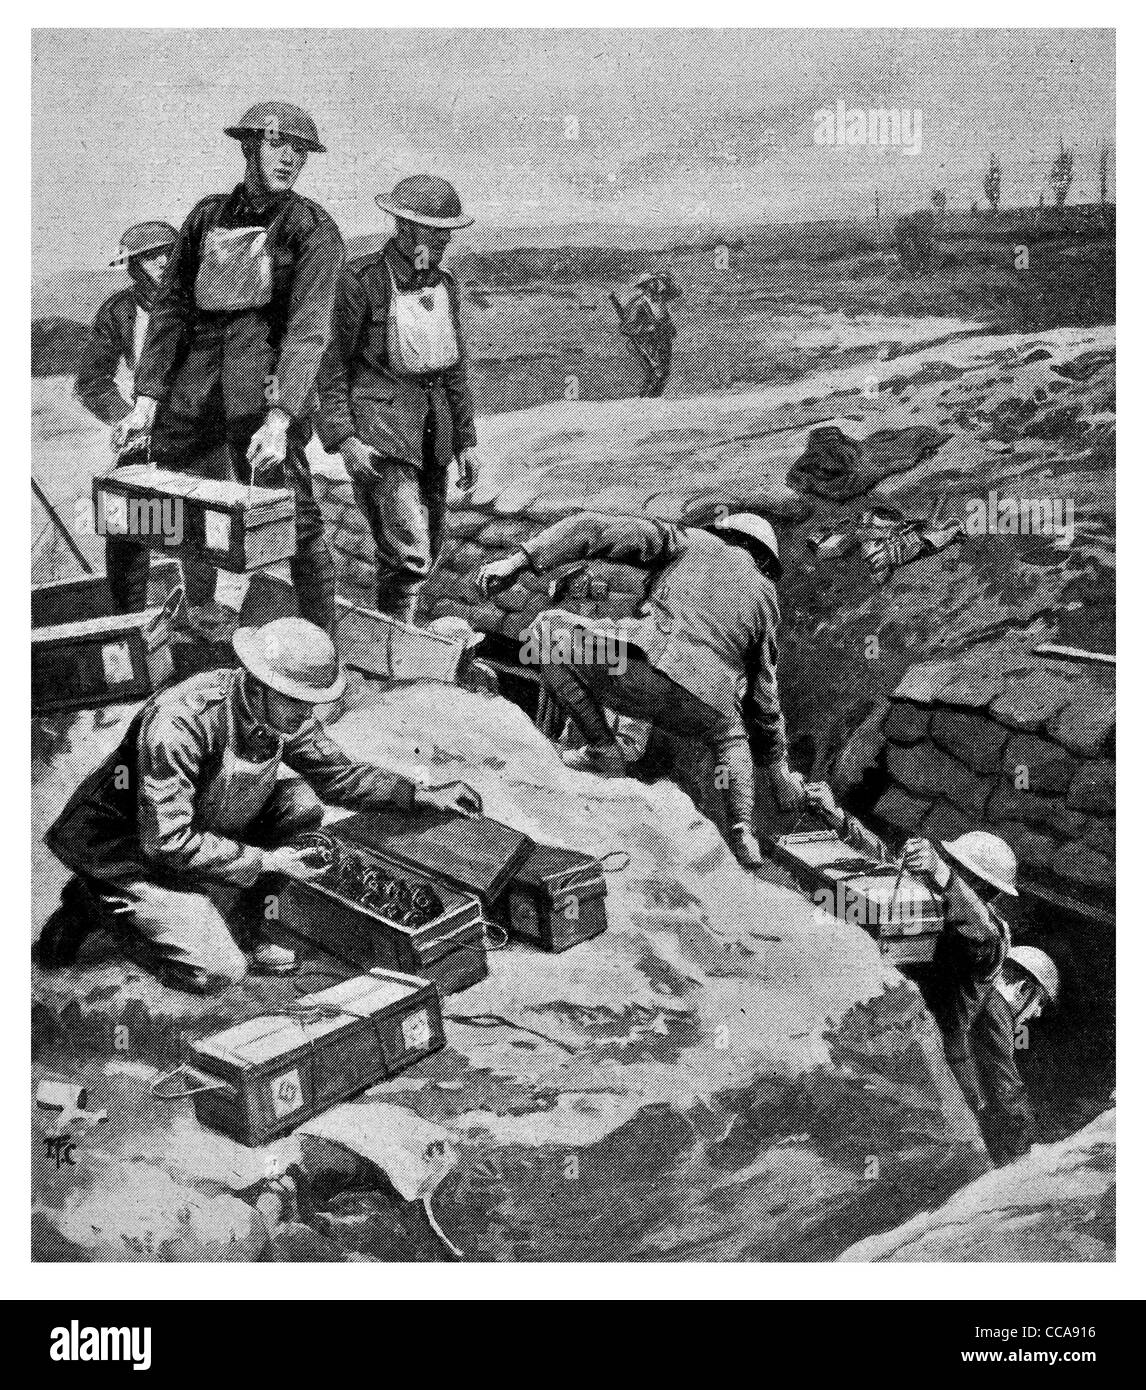 1917 2nd British second Army supply line bombs munitions sand bag wall trench ammunition box hand grenade logistics - Stock Image